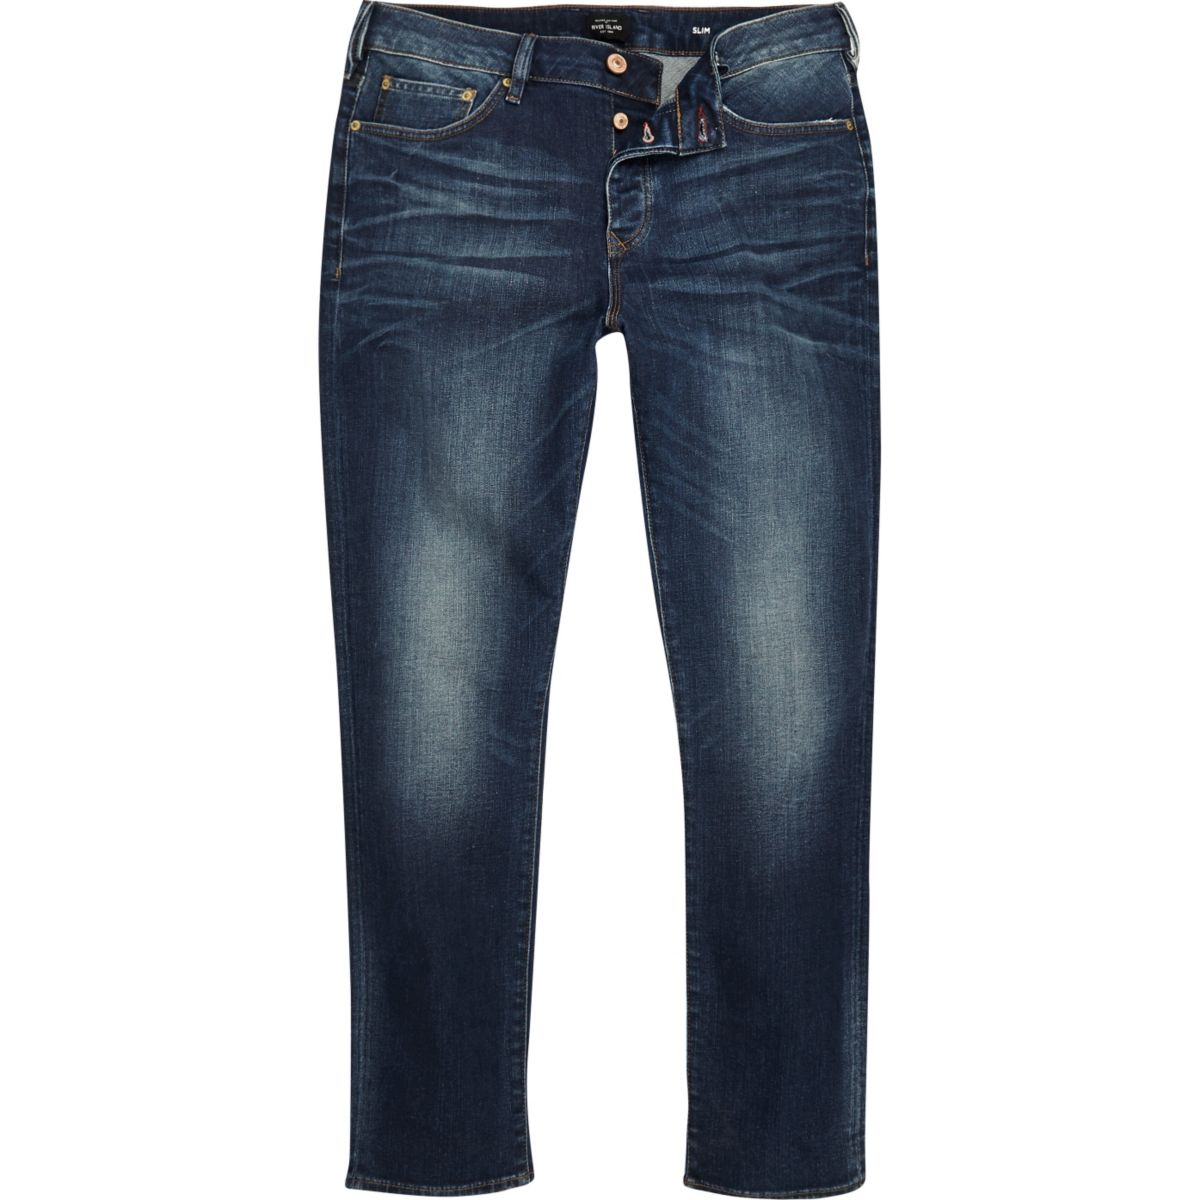 Find great deals on eBay for mens blue jeans. Shop with confidence.